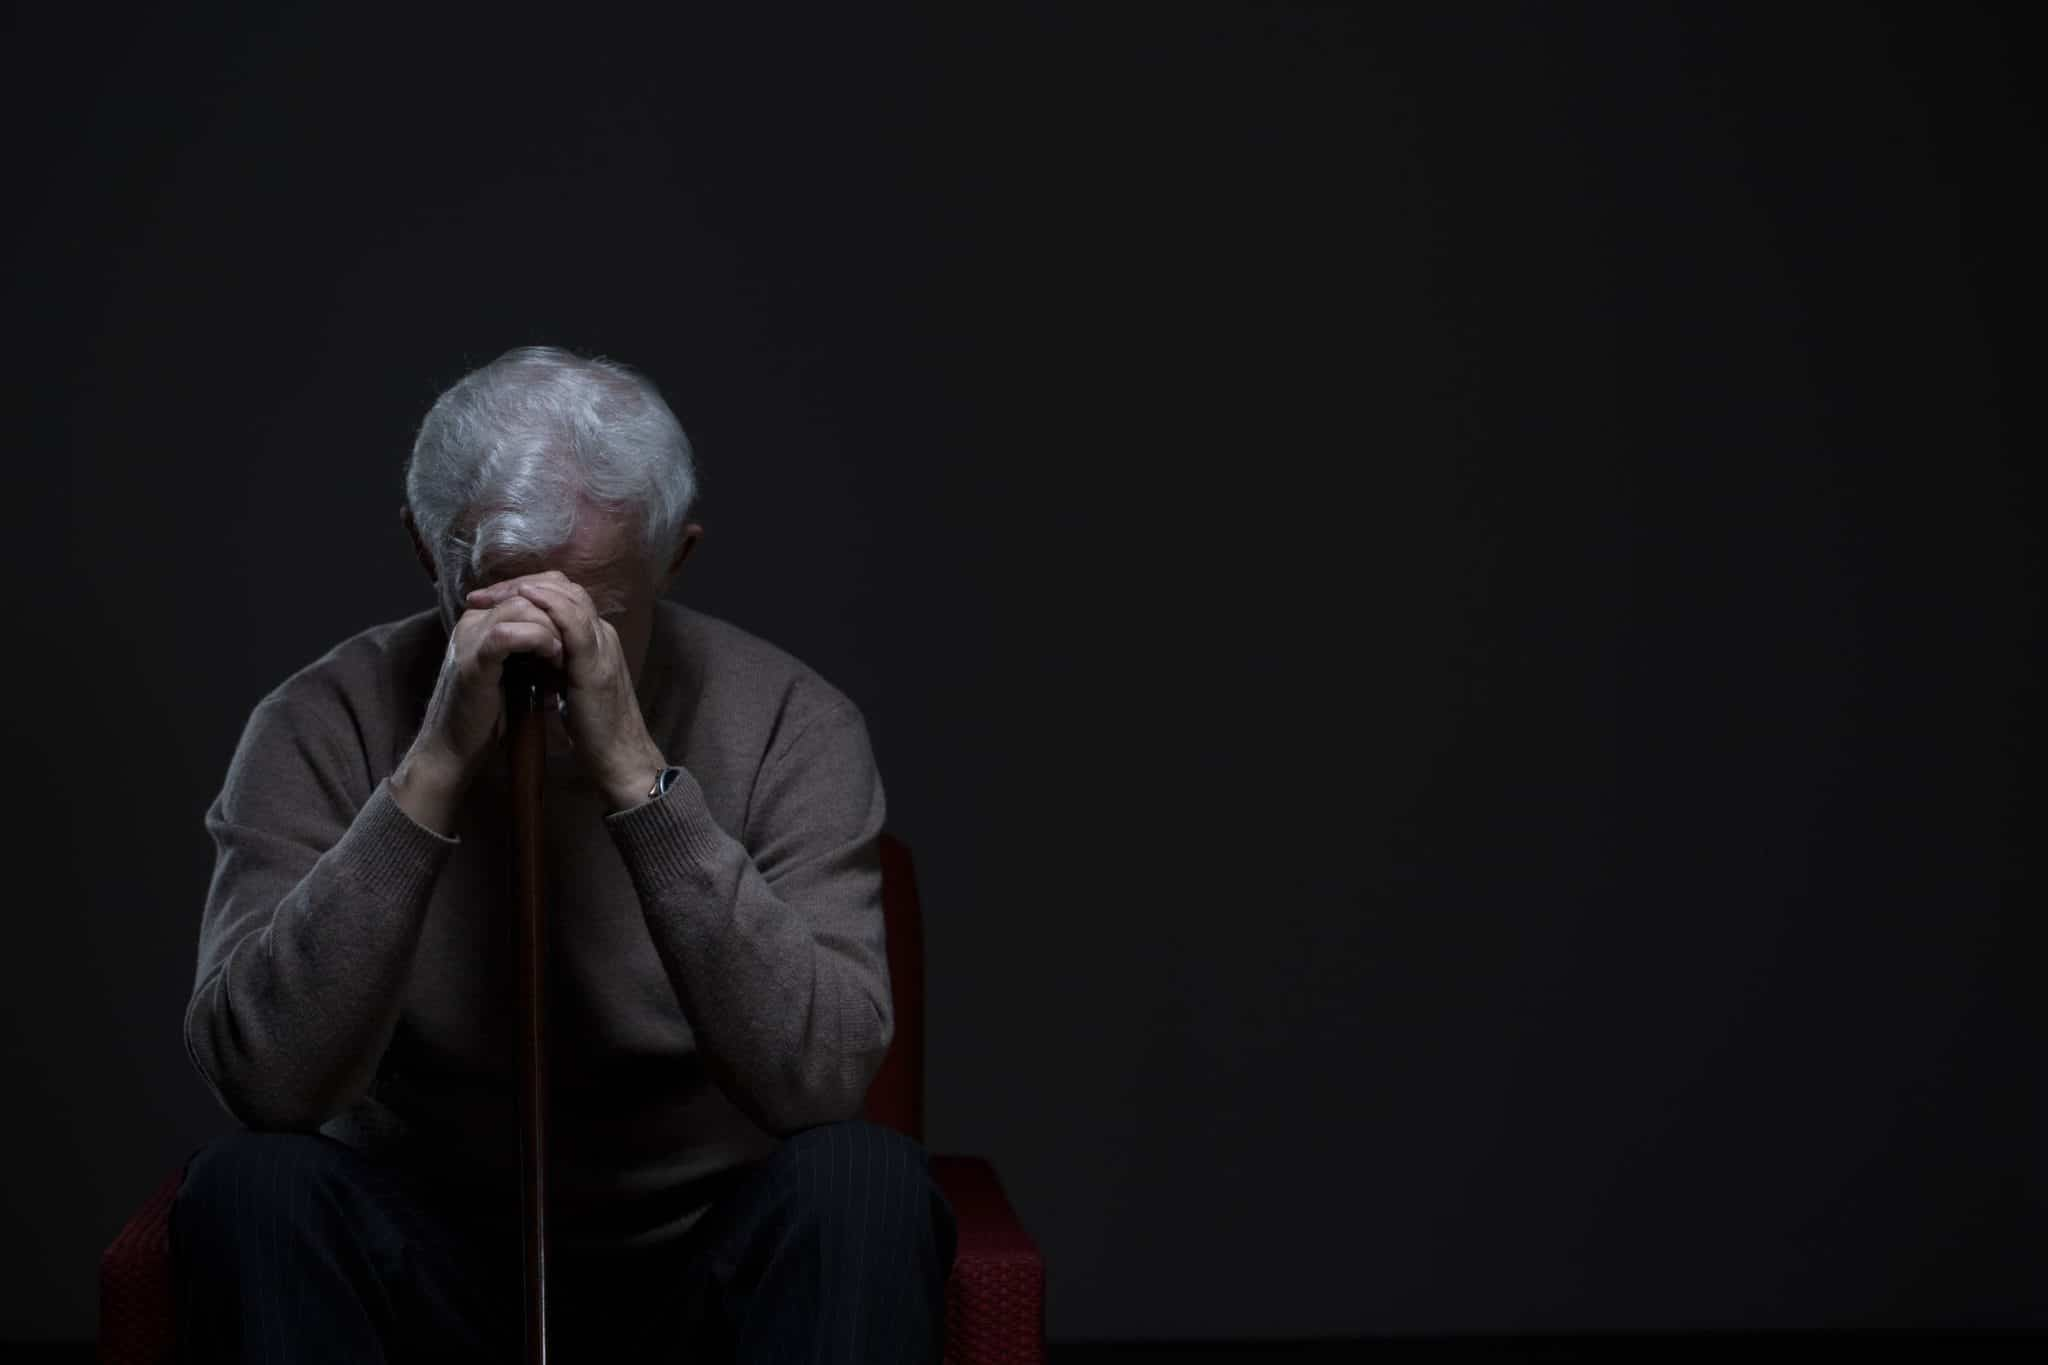 Older Man in Dark with Head in His Hands